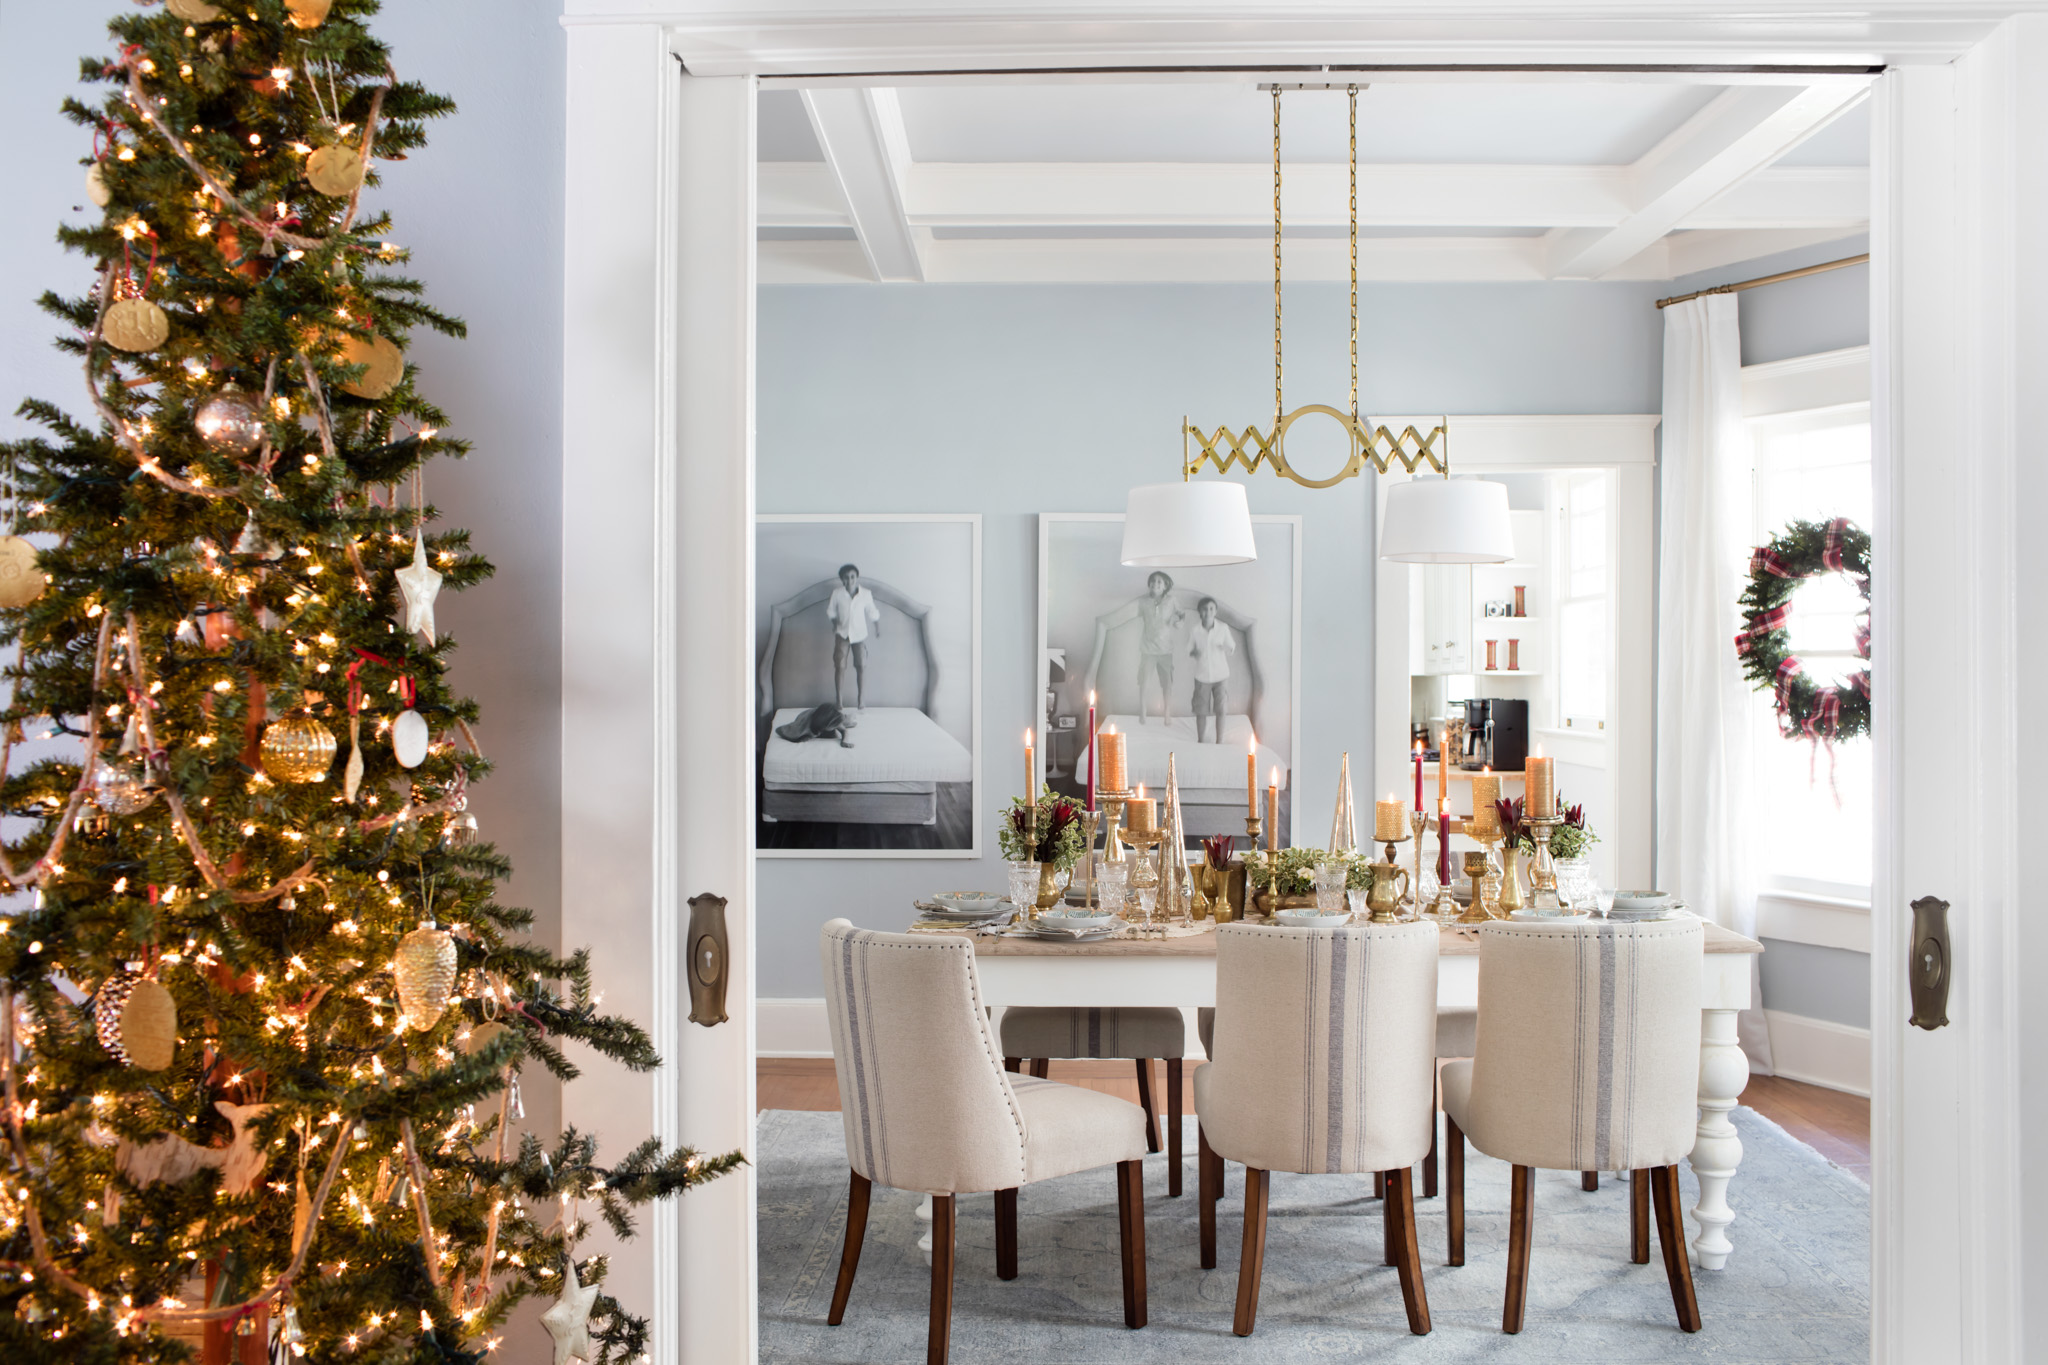 15 Ways to Add Classic Christmas Charm to Your Home - My Diamond Maids